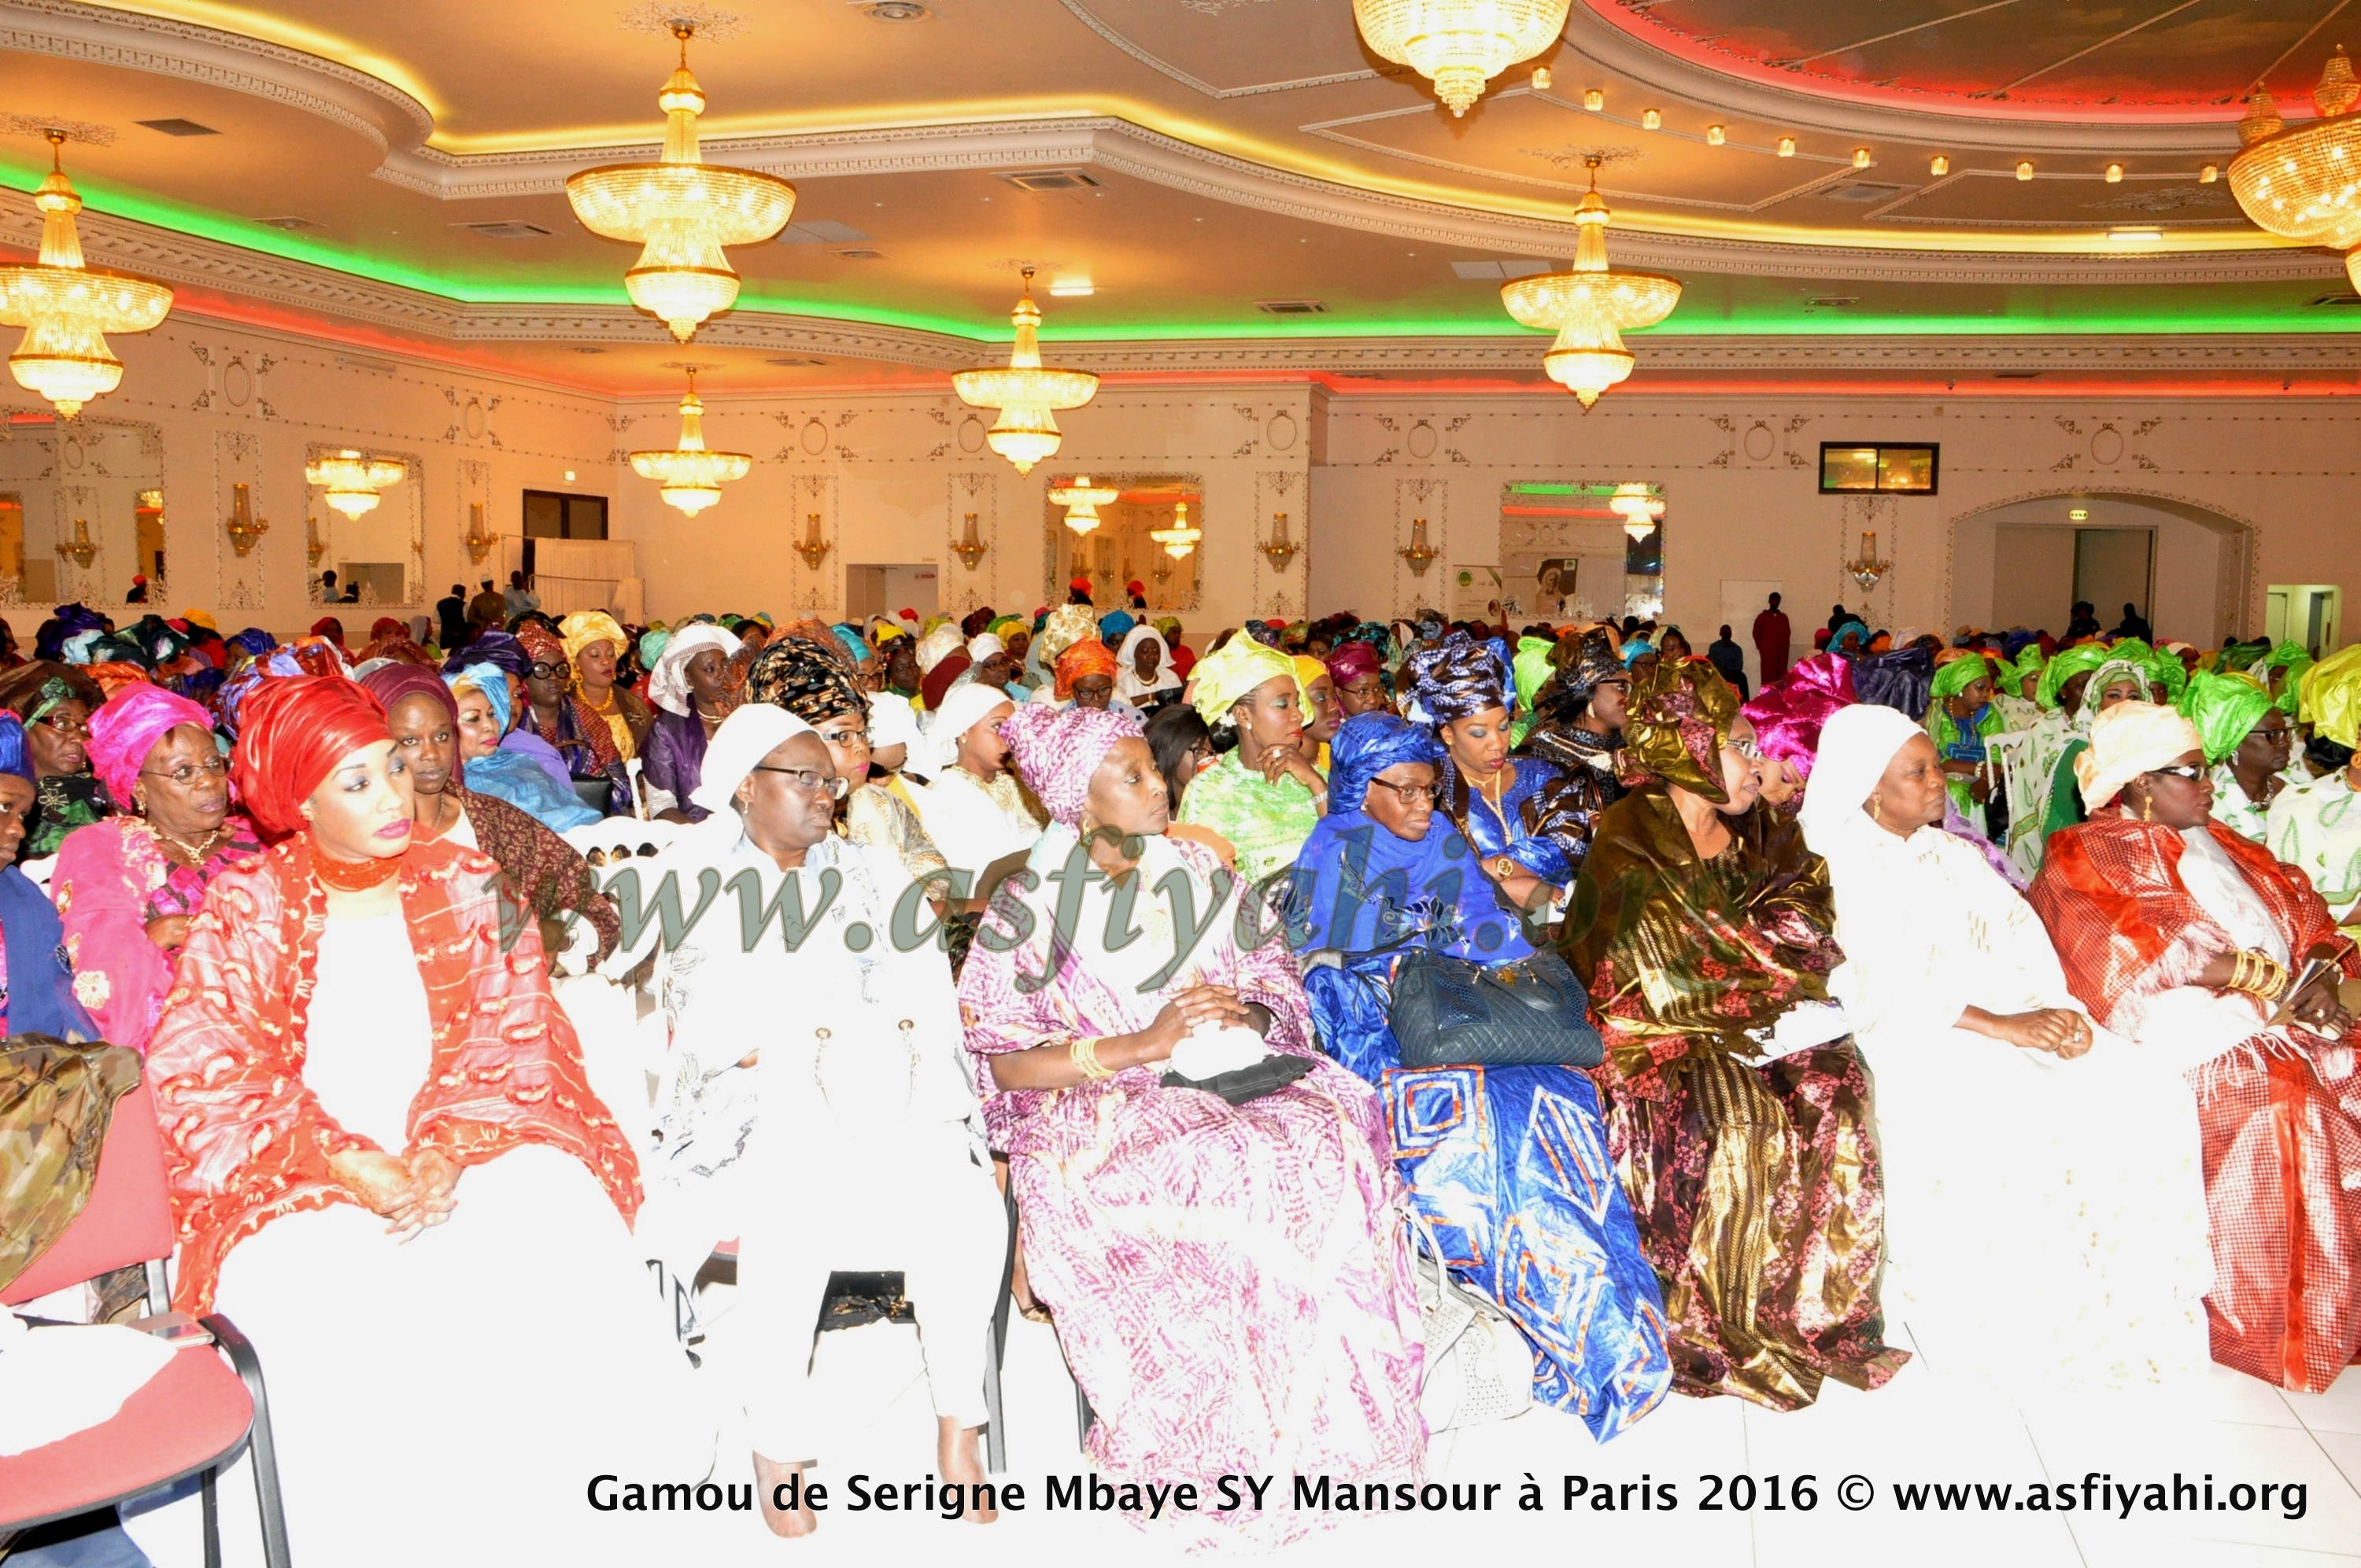 PHOTOS - PARIS - Les Images du Gamou de Paris 2016, organisé par la Dahira Moutahabina Filahi